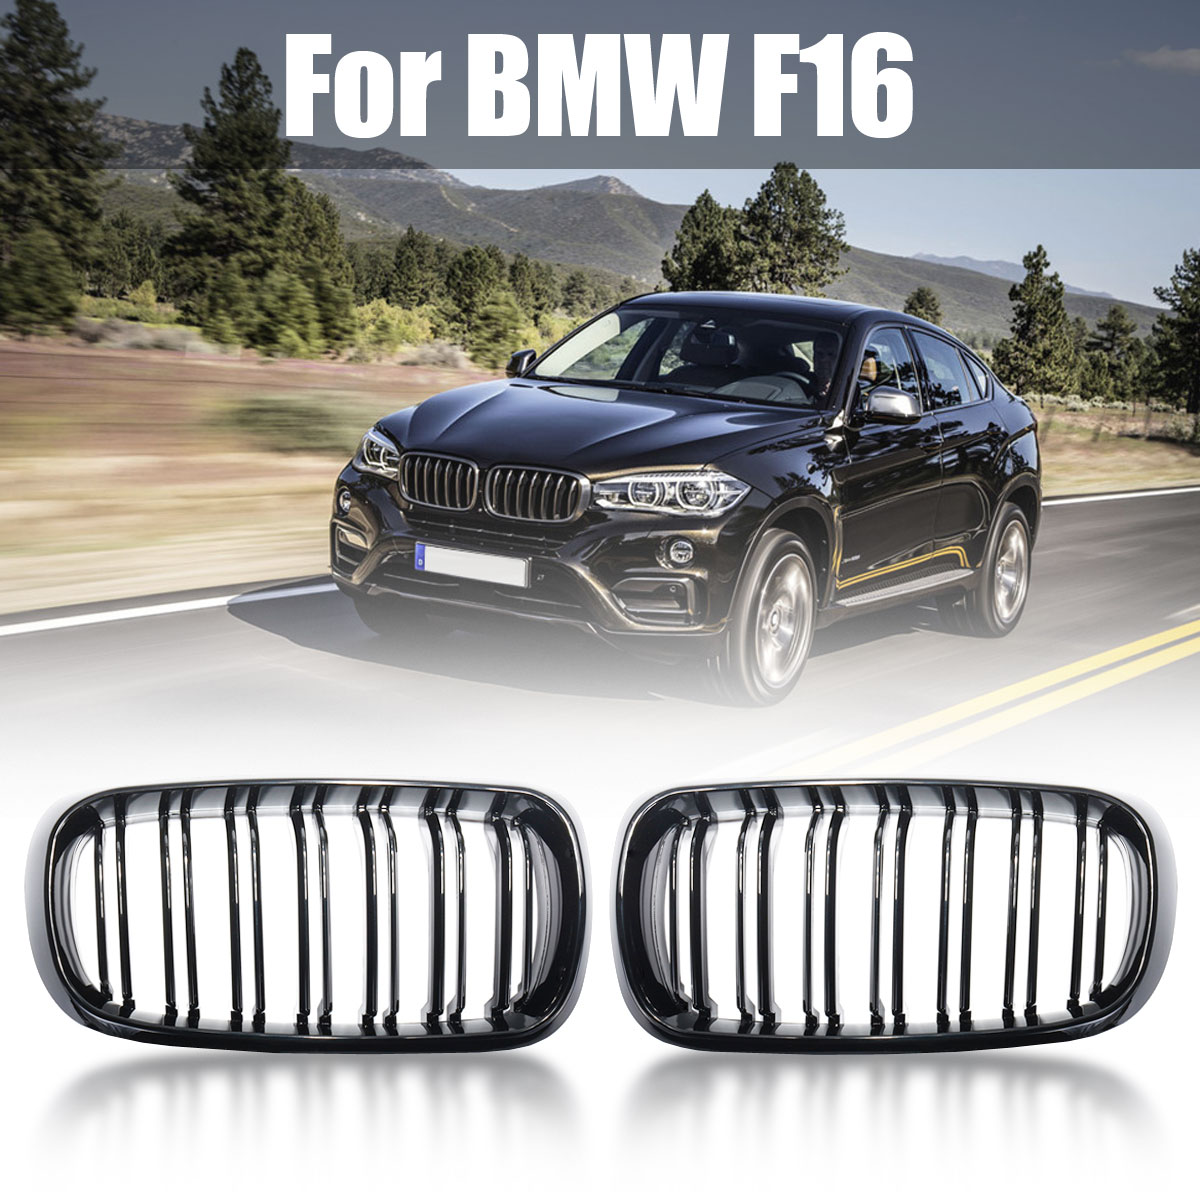 1 Pair New ABS Replacement Gloss/Matte Black 2 Double Slat Line Front Kidney Sport Grill Grille For BMW F15 F16 X5 X6 2014-2018 x5 f15 x6 f16 abs gloss black grill for bmw x5 x6 f15 f16 front bumper grille kidney mesh